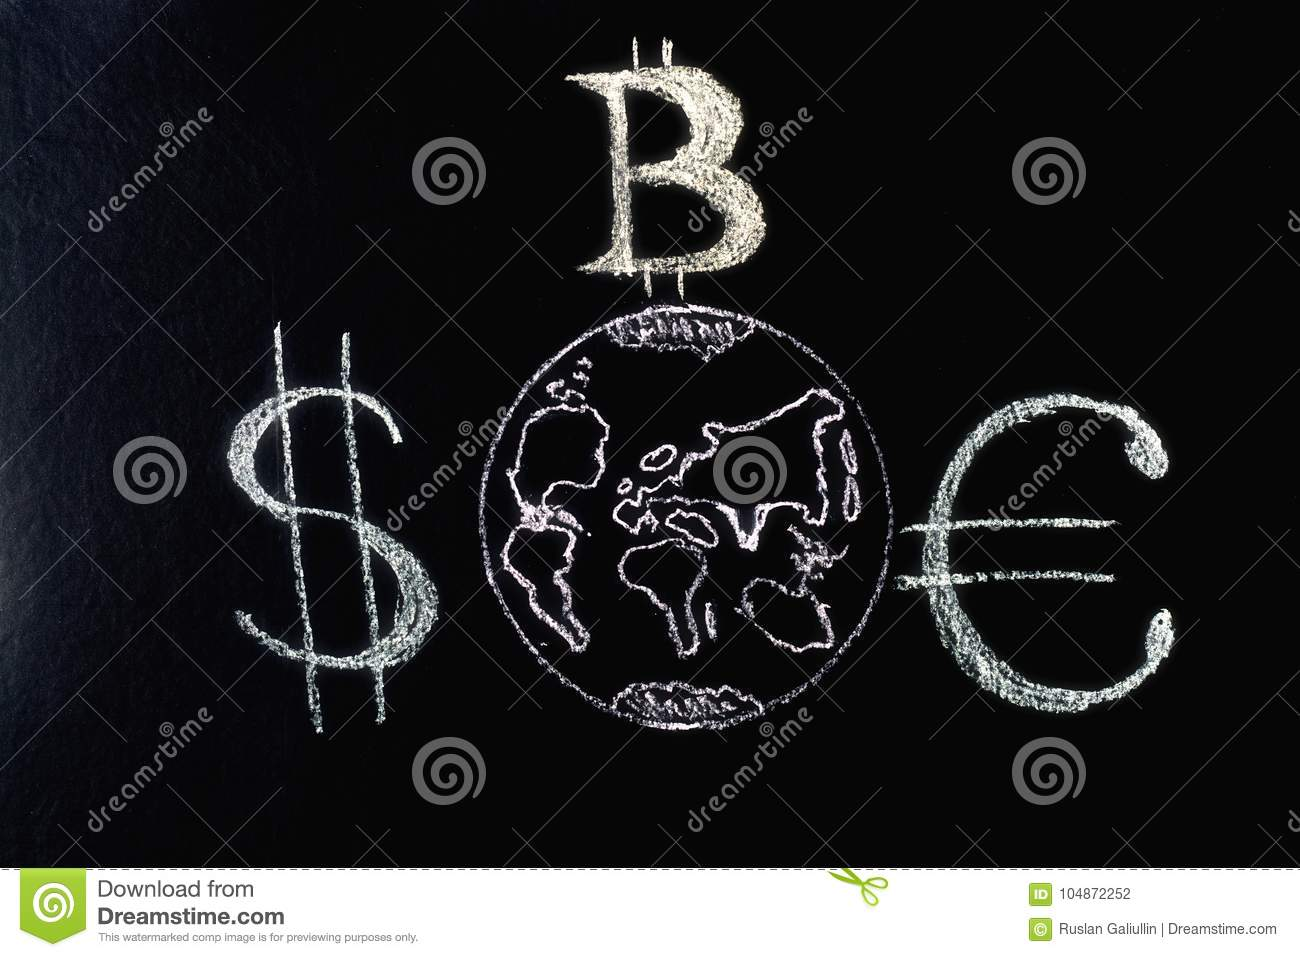 The Character Is The Leader Of Bitcoin Over Traditional Currencies